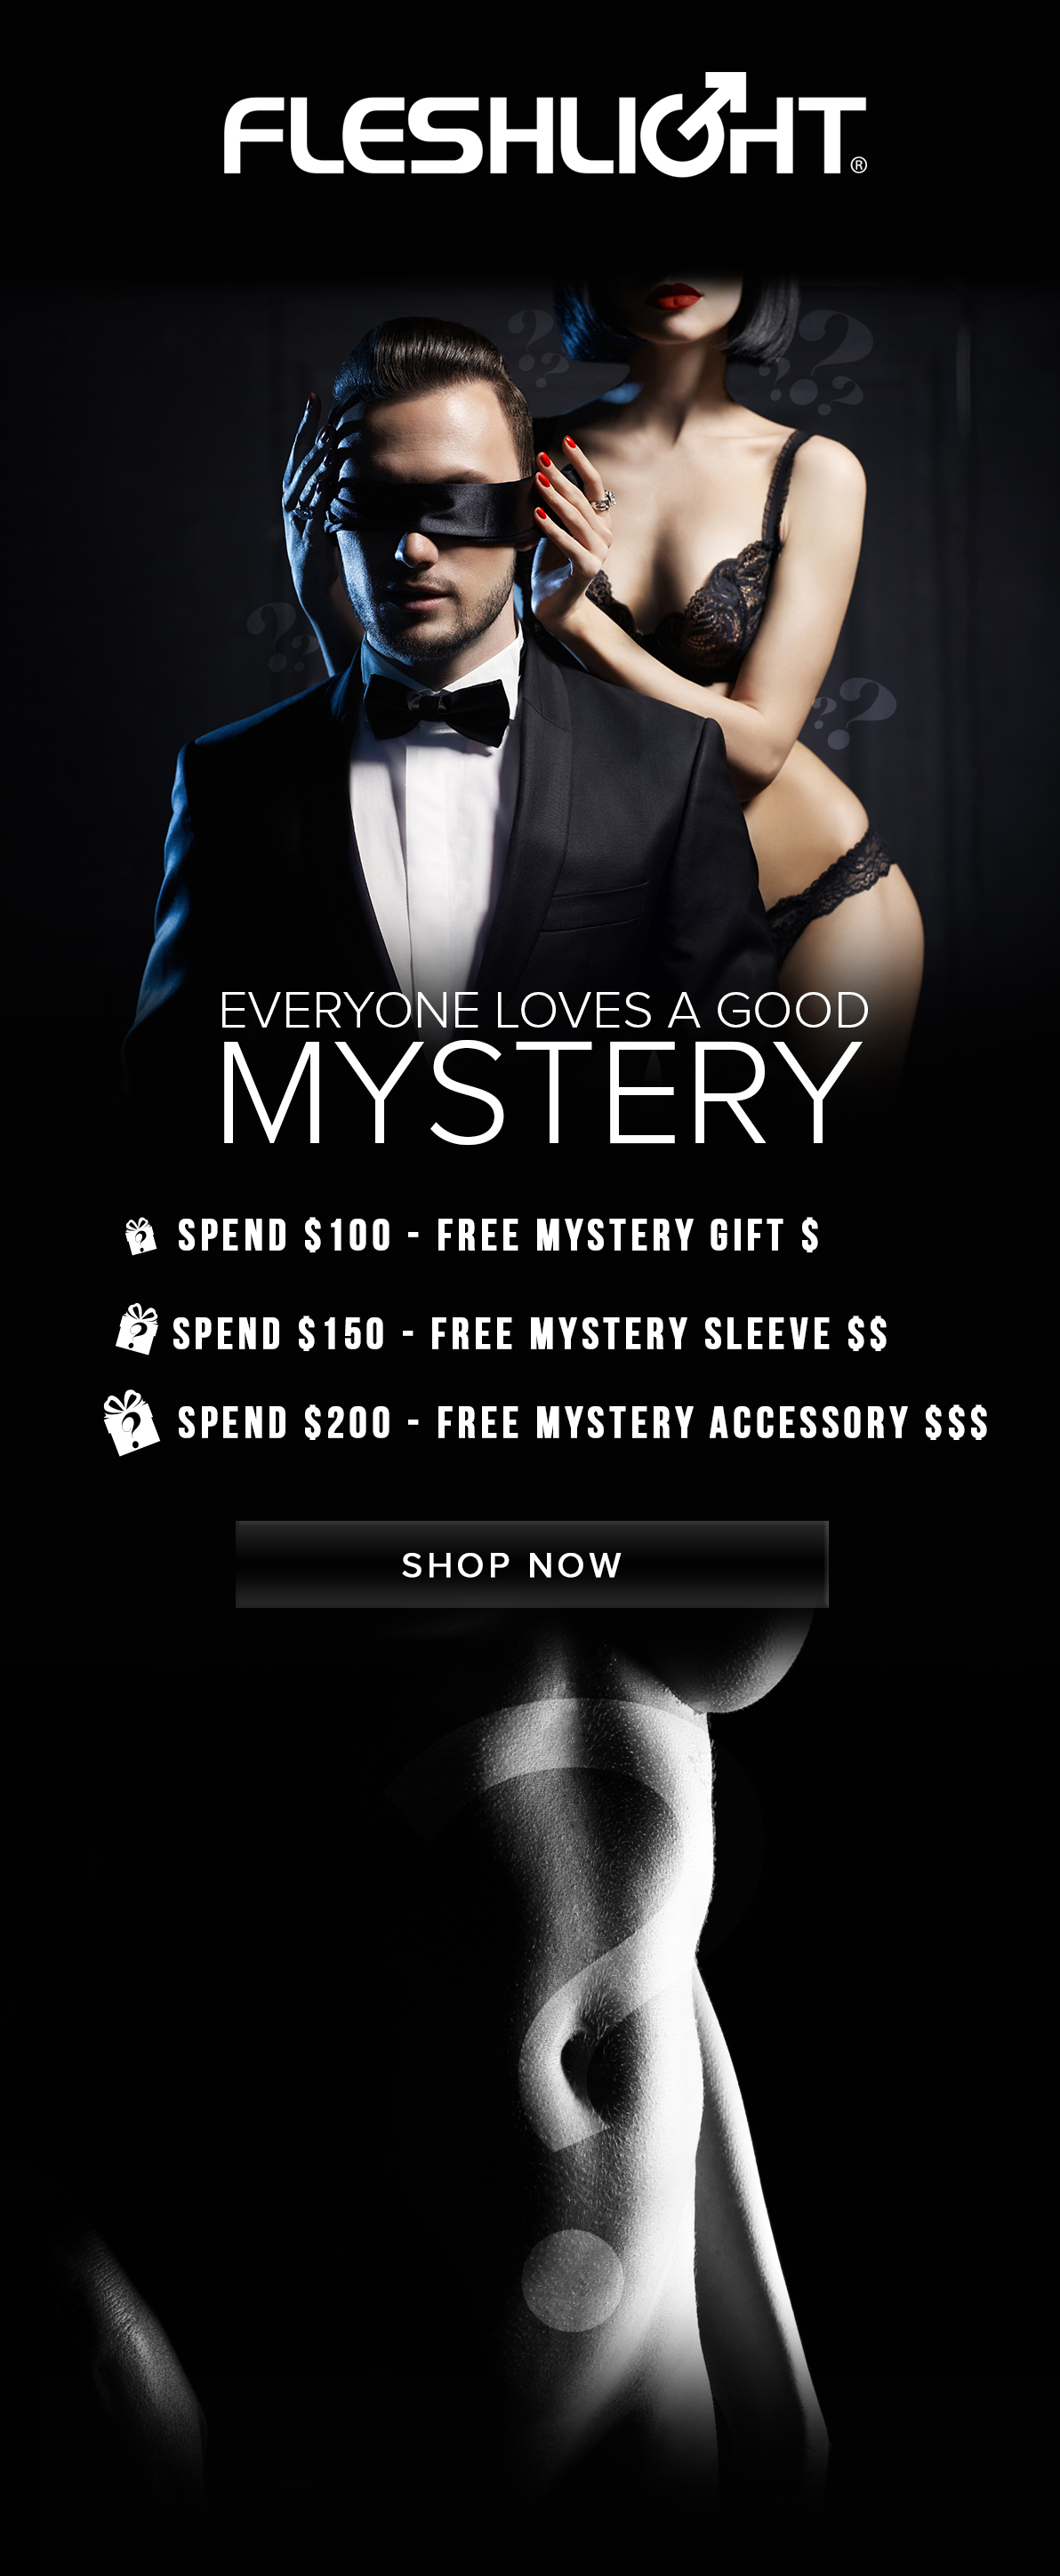 Fleshlight - Treat Yourself To Free Gifts - Mystery Week Continues